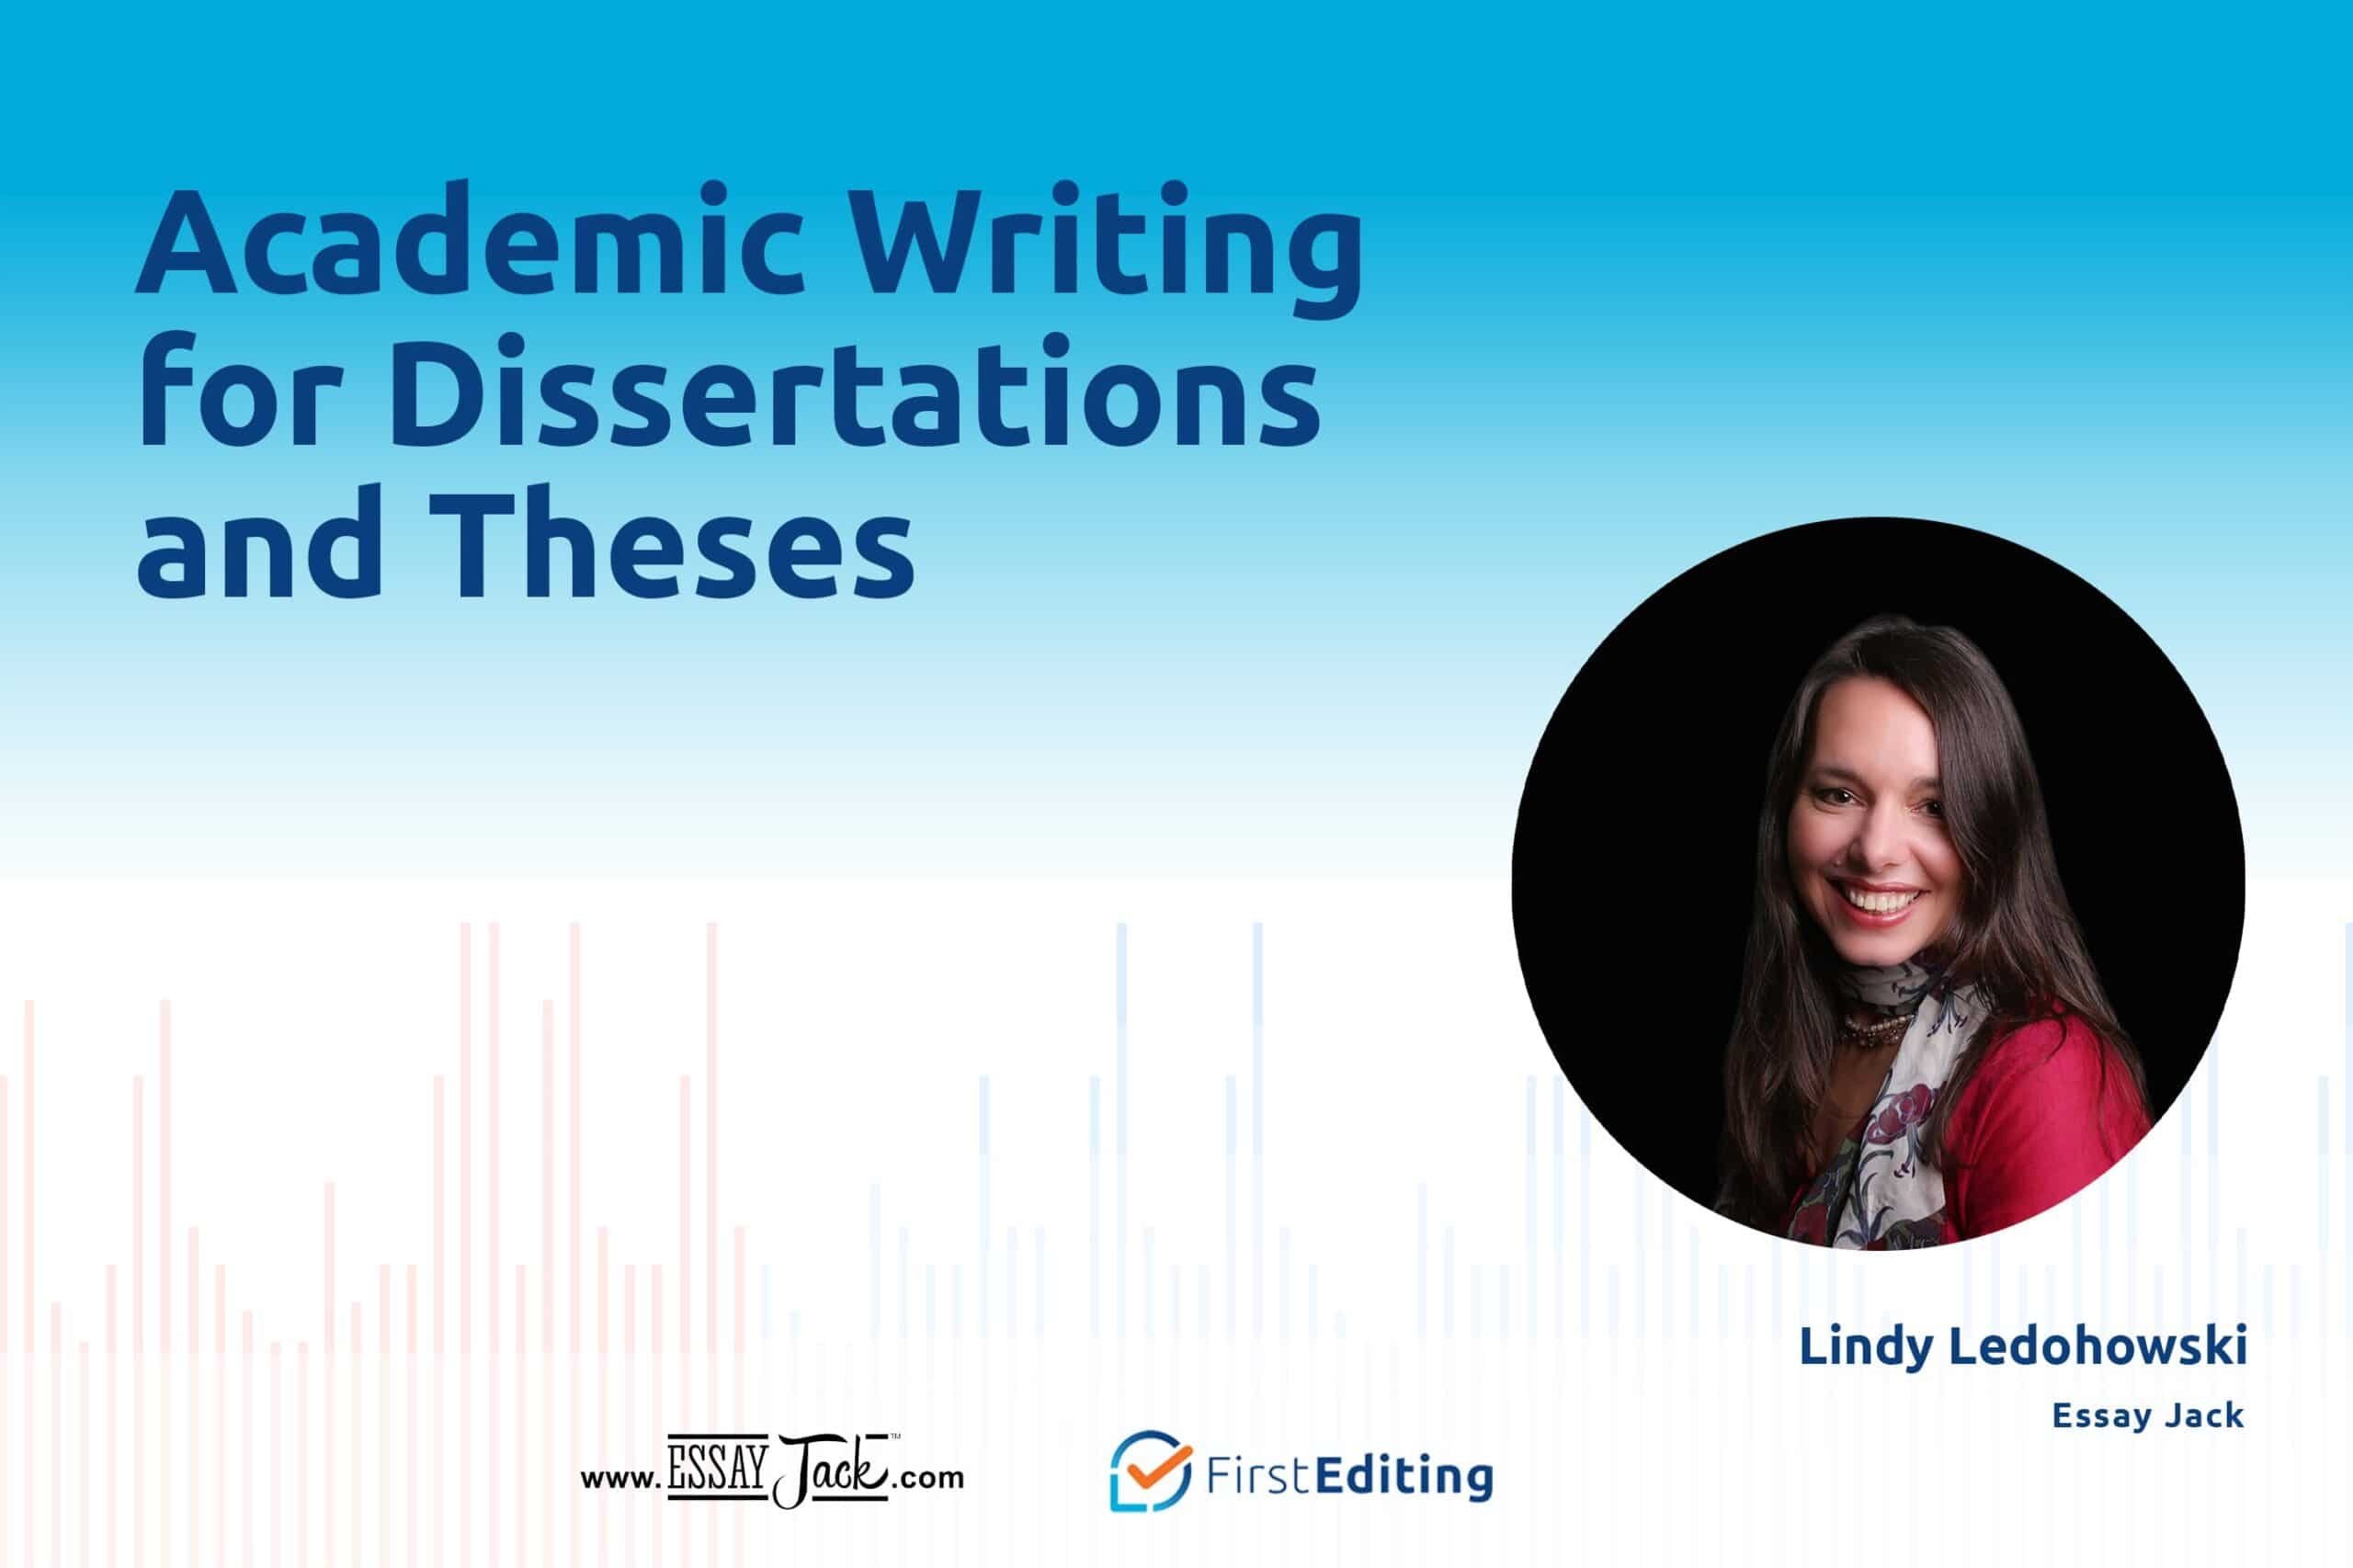 Academic Writing for Dissertations and Theses with Lindy Ledohowski